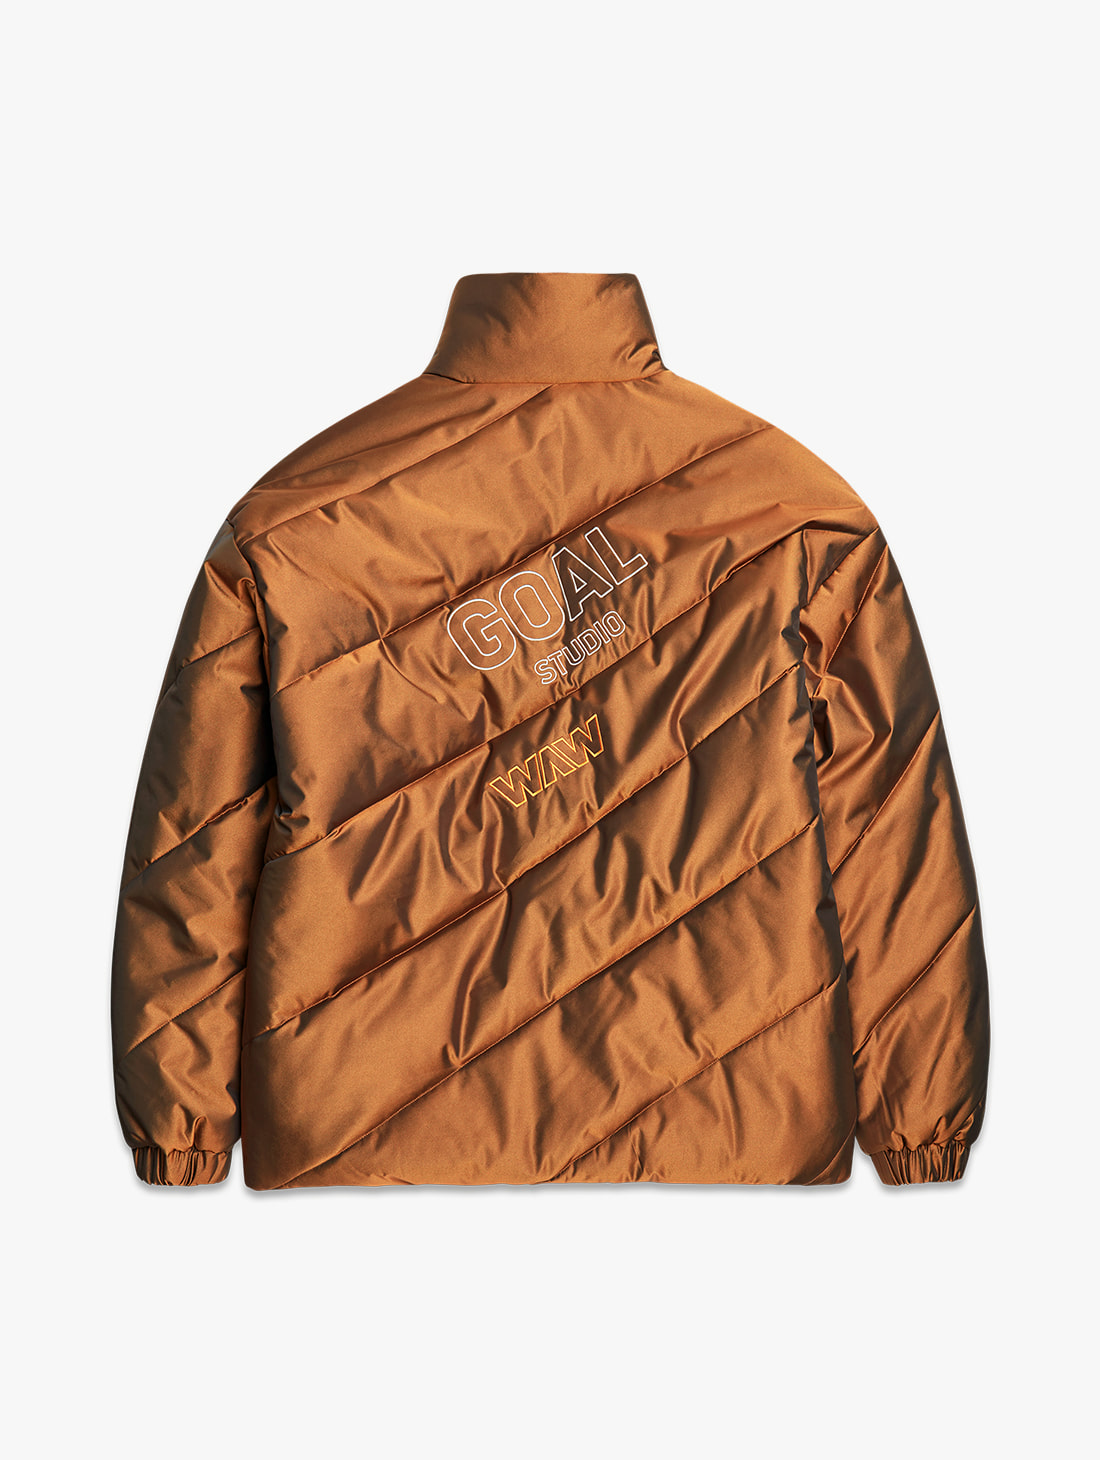 [PRE-ORDER 10% OFF] WWFC DIAGONAL TWO TONE PADDED JACKET